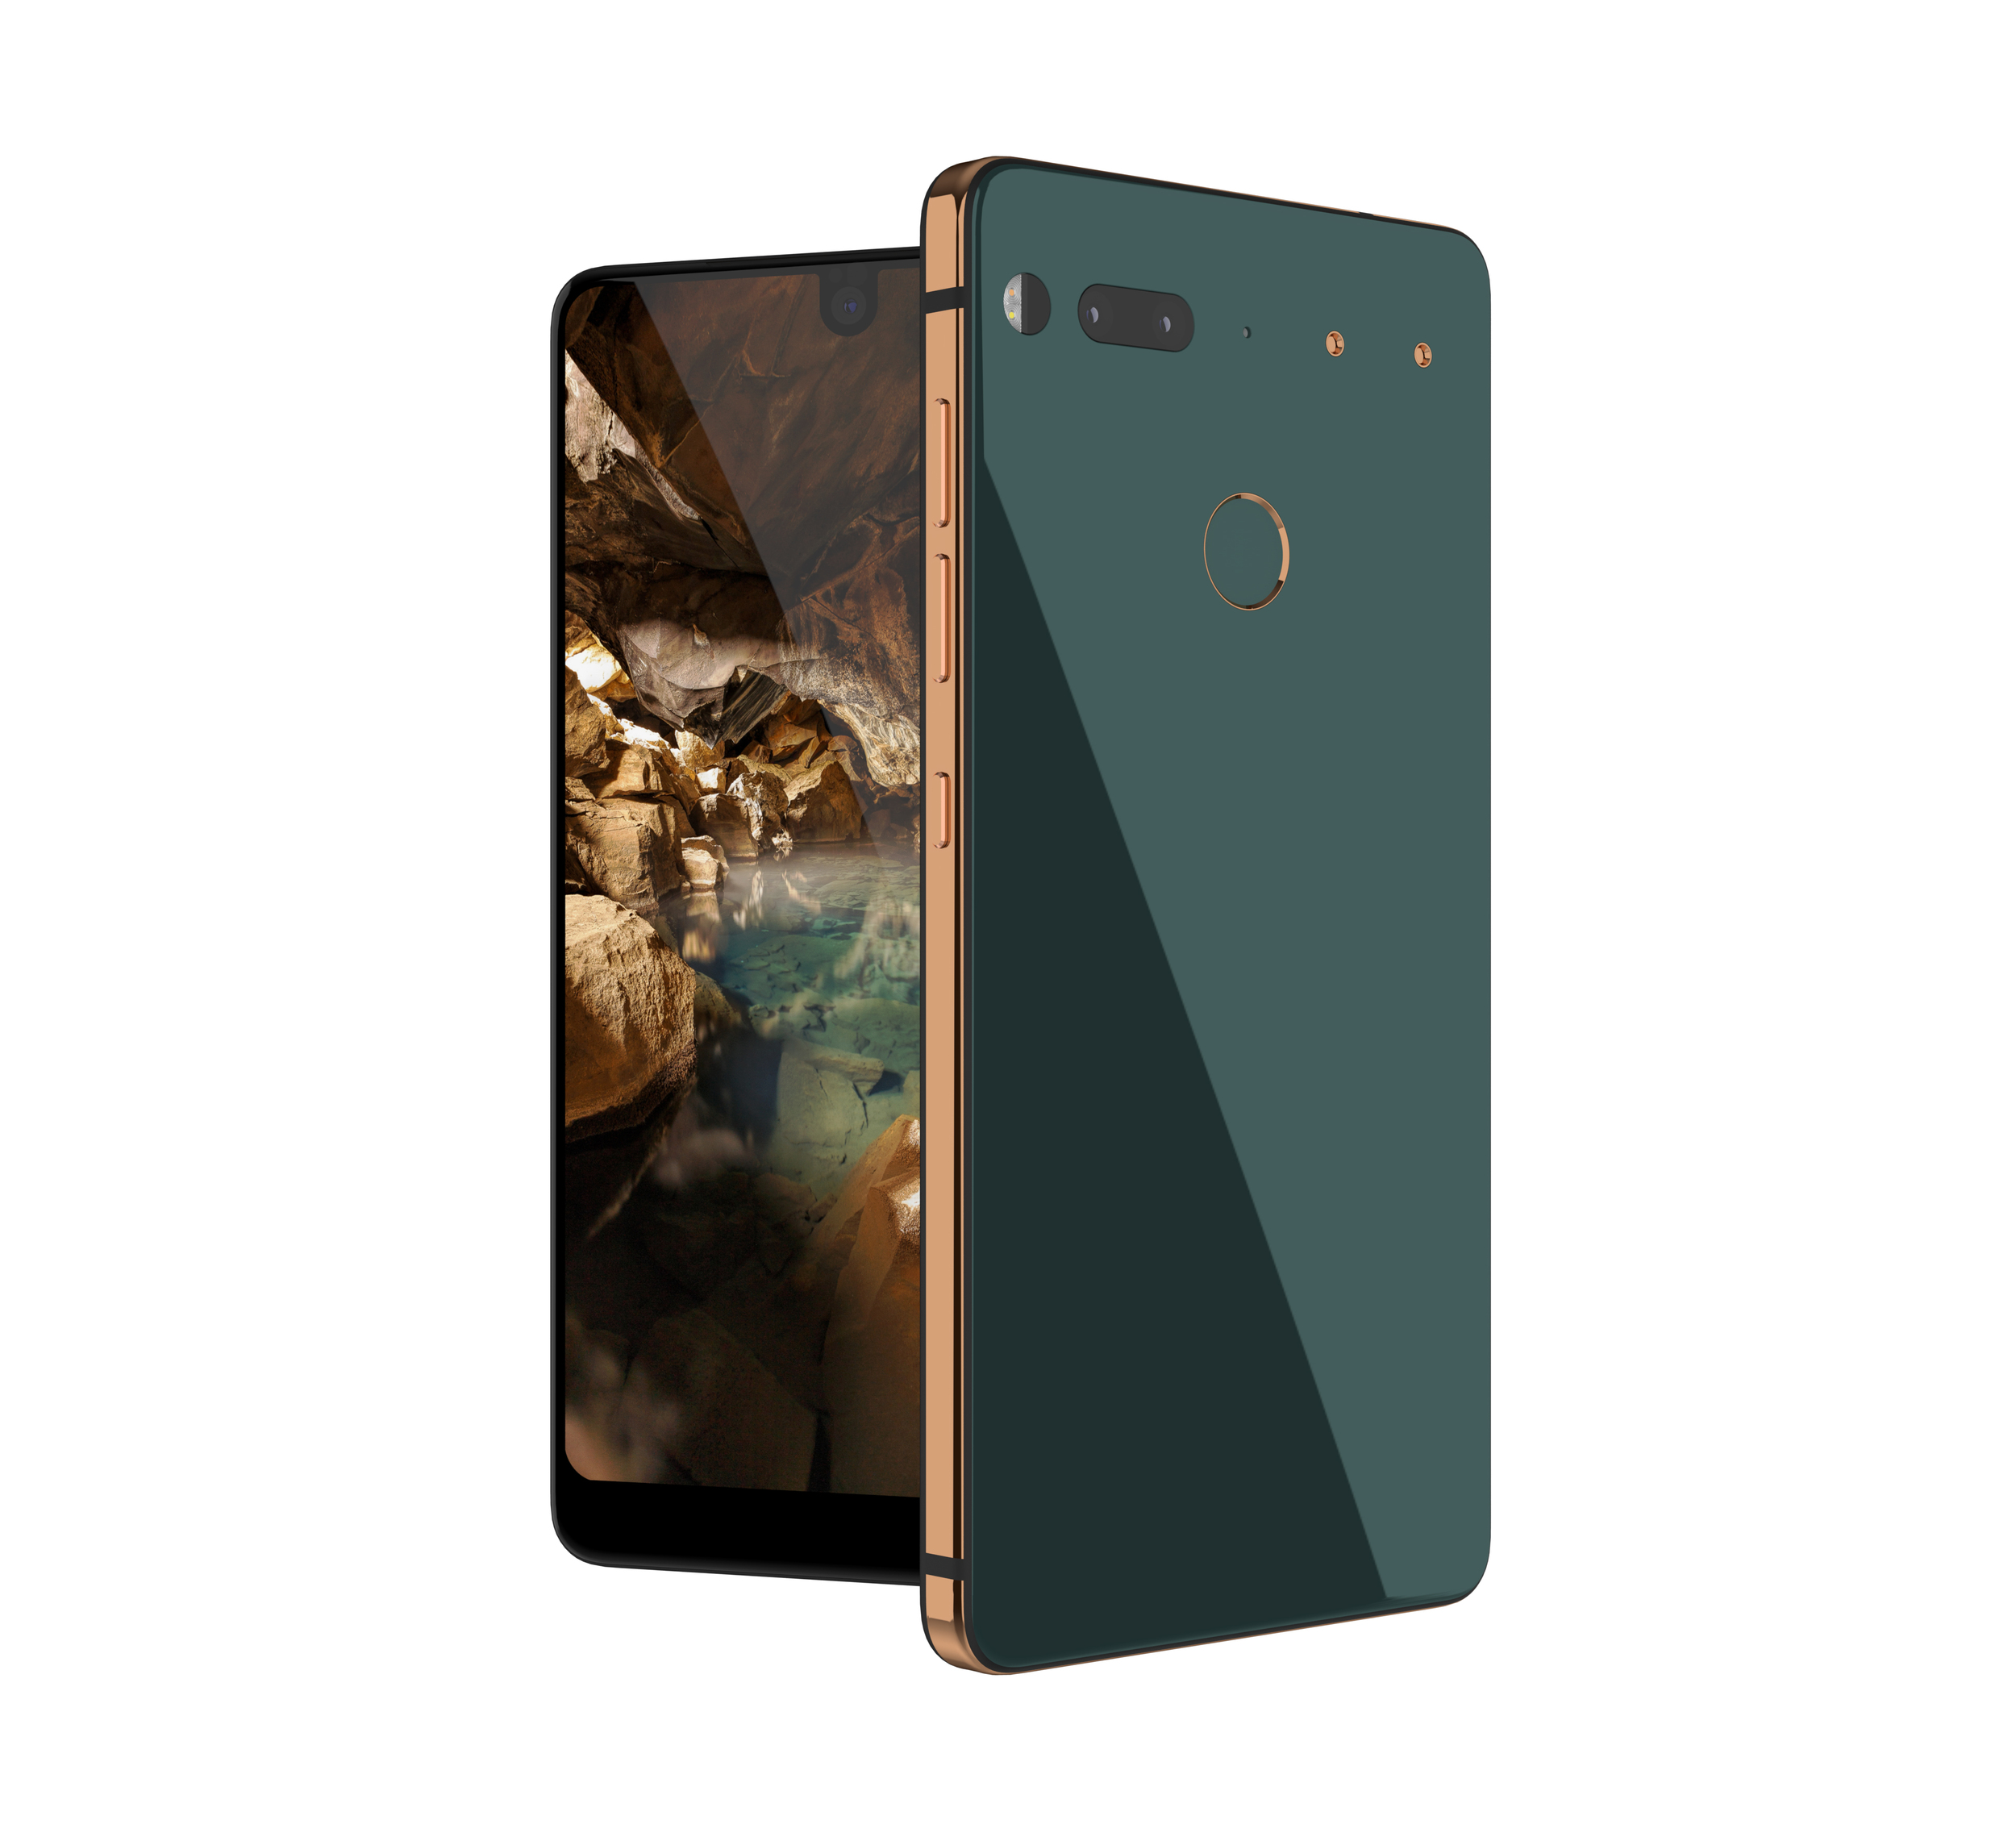 smartphone essential ph 1 will be available for a month